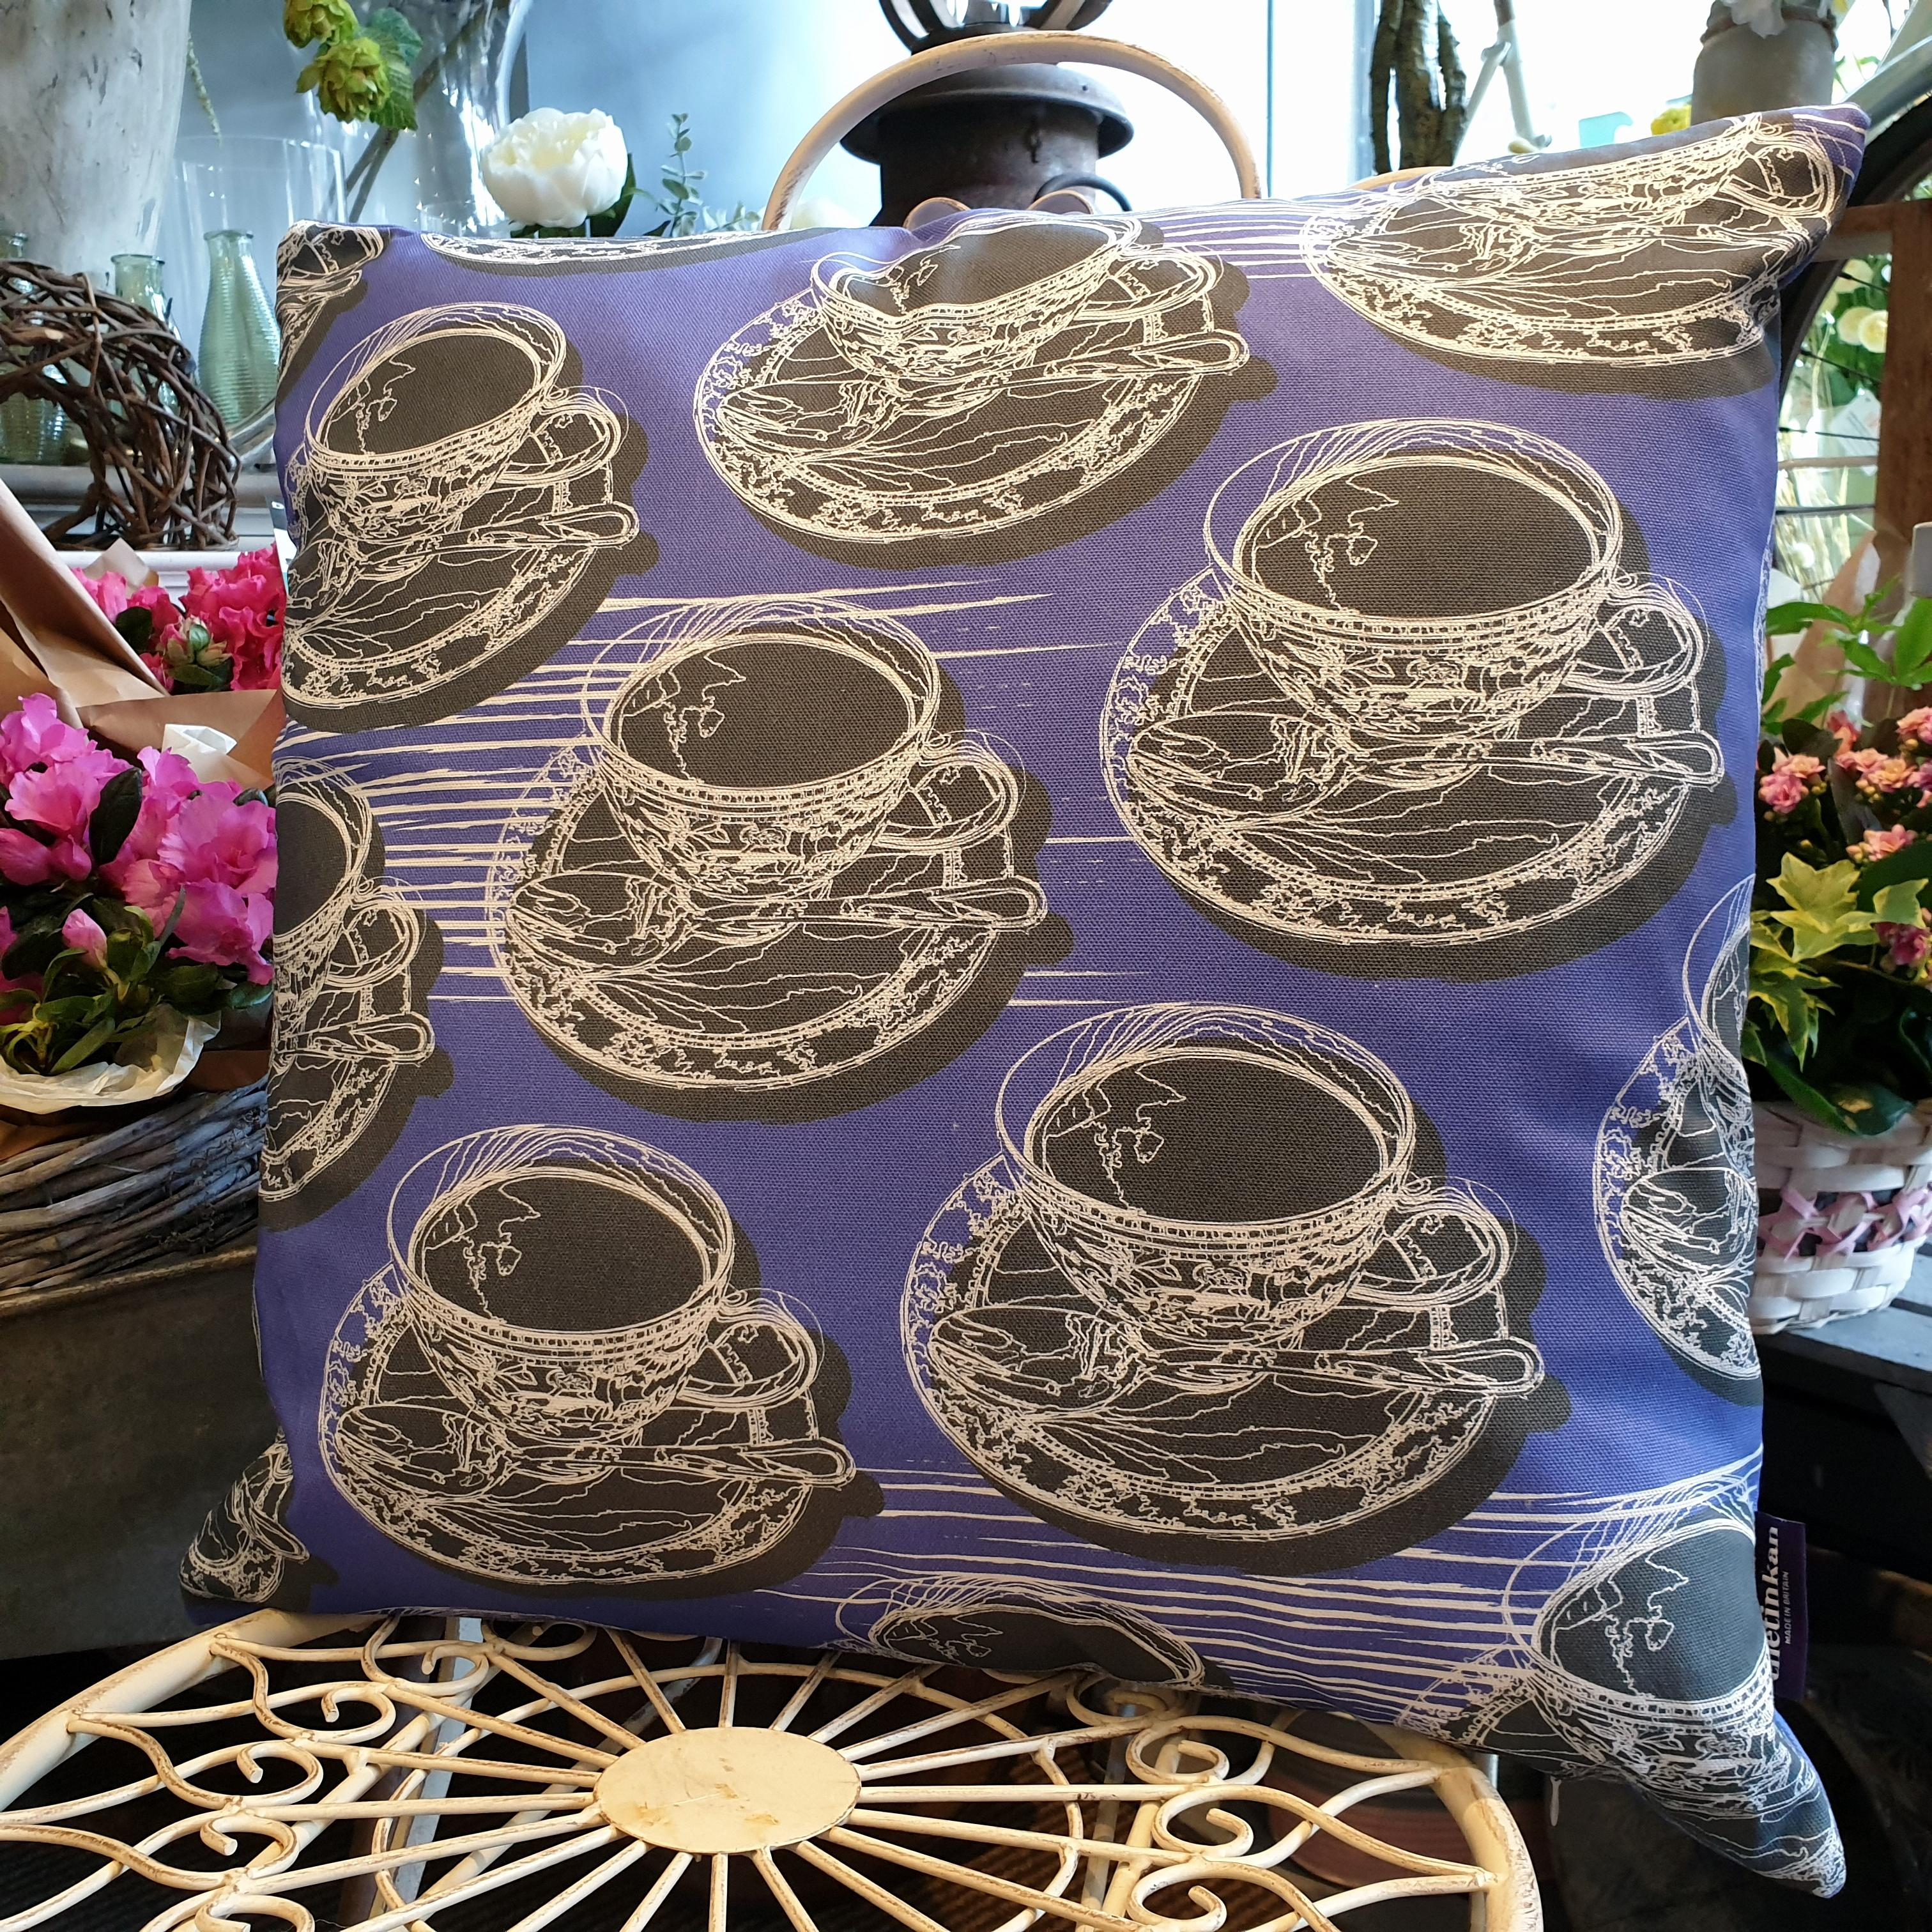 Double-sided violet purple 51cm square retro Afternoon Tea cushion with artistic white shards designed by thetinkan. White traced outline of multiple British teacups and saucers each colour filled in charcoal grey. Available with an optional luxury cushion inner pad. VIEW PRODUCT >>